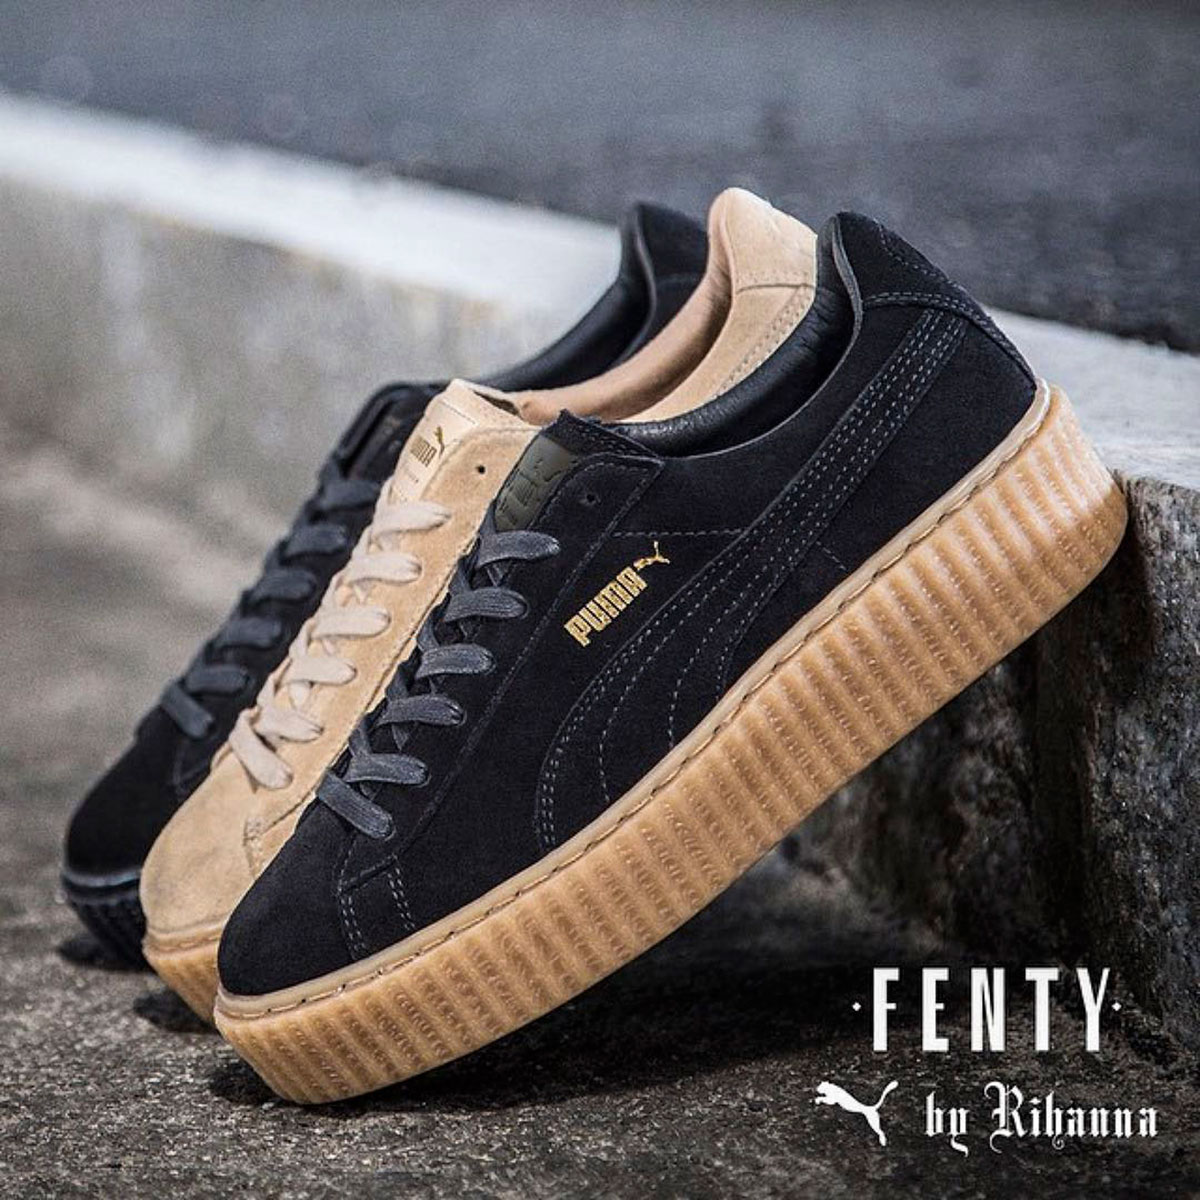 rihanna 39 s puma fenty creepers sold out in hours stylefrizz. Black Bedroom Furniture Sets. Home Design Ideas